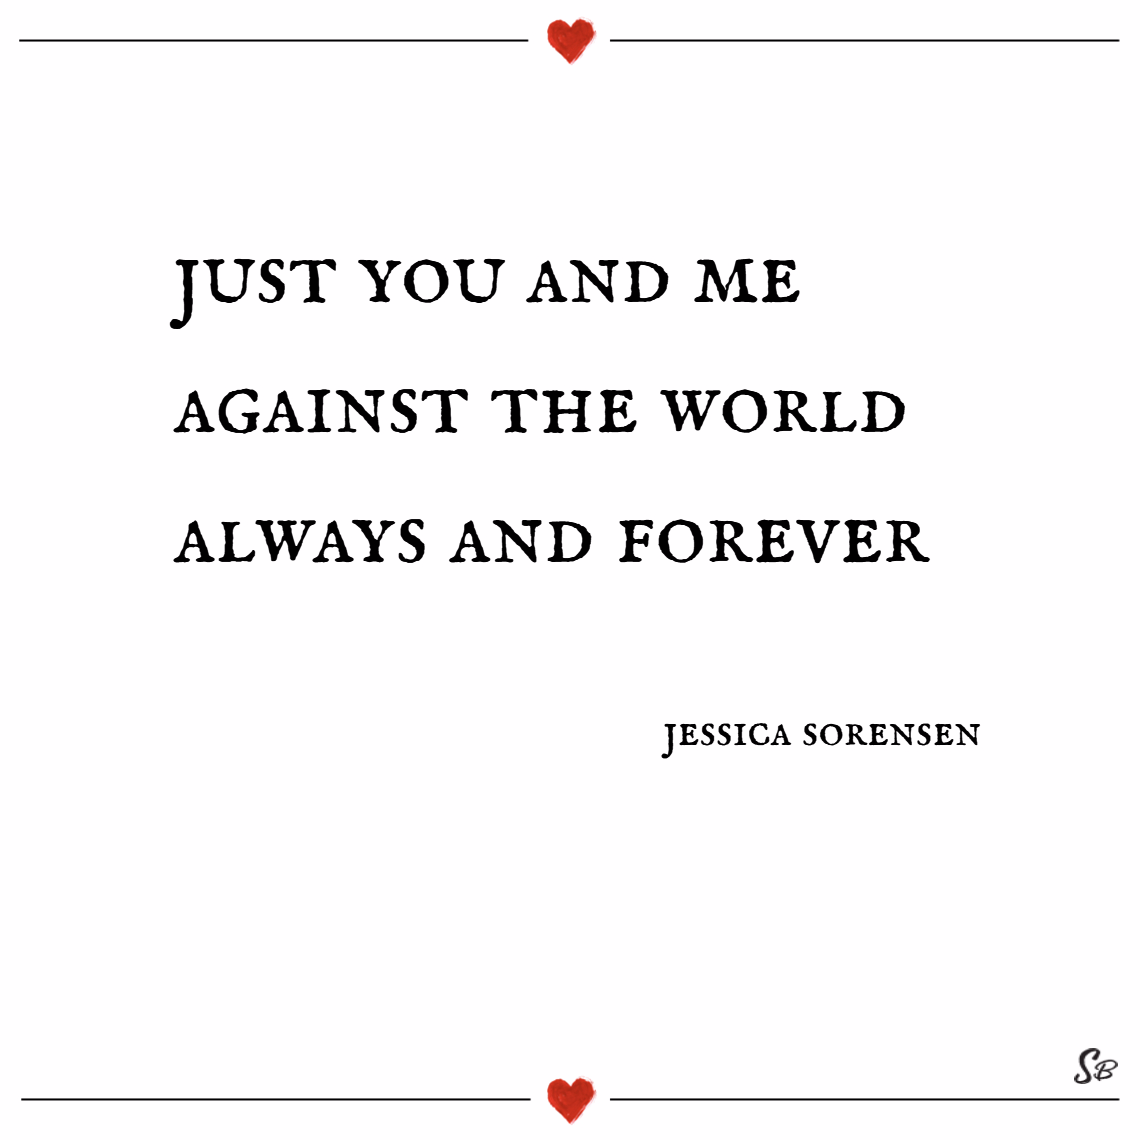 Just You And Me Against The World Always And Forever Jessica